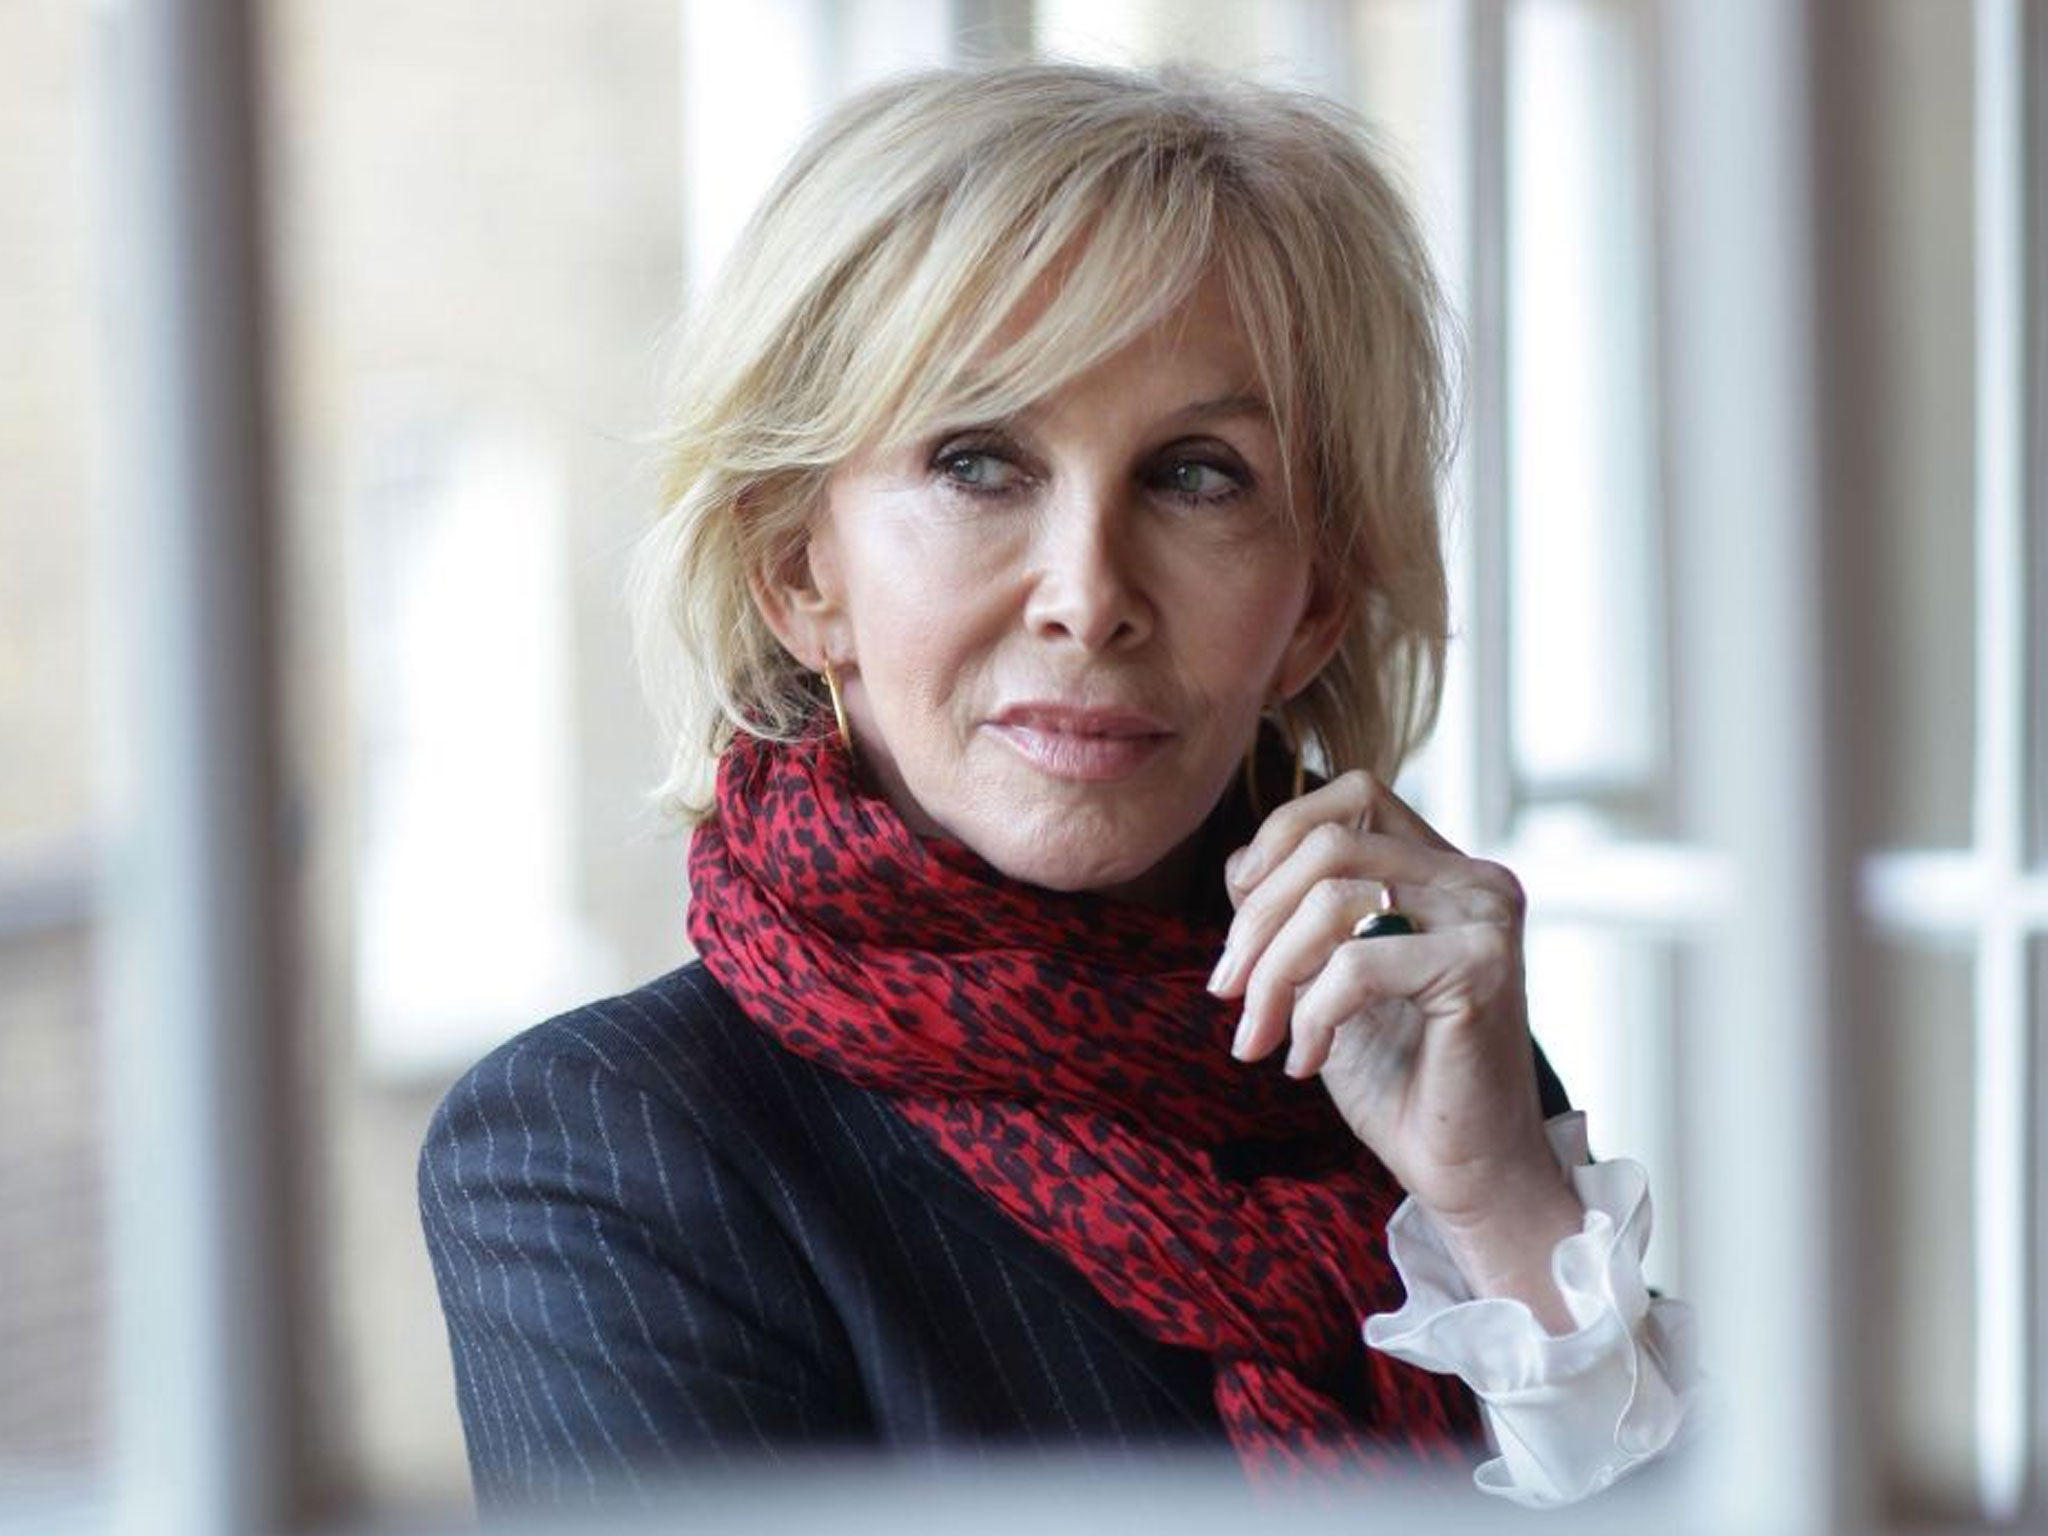 Watch Trudie Styler (born 1954) video